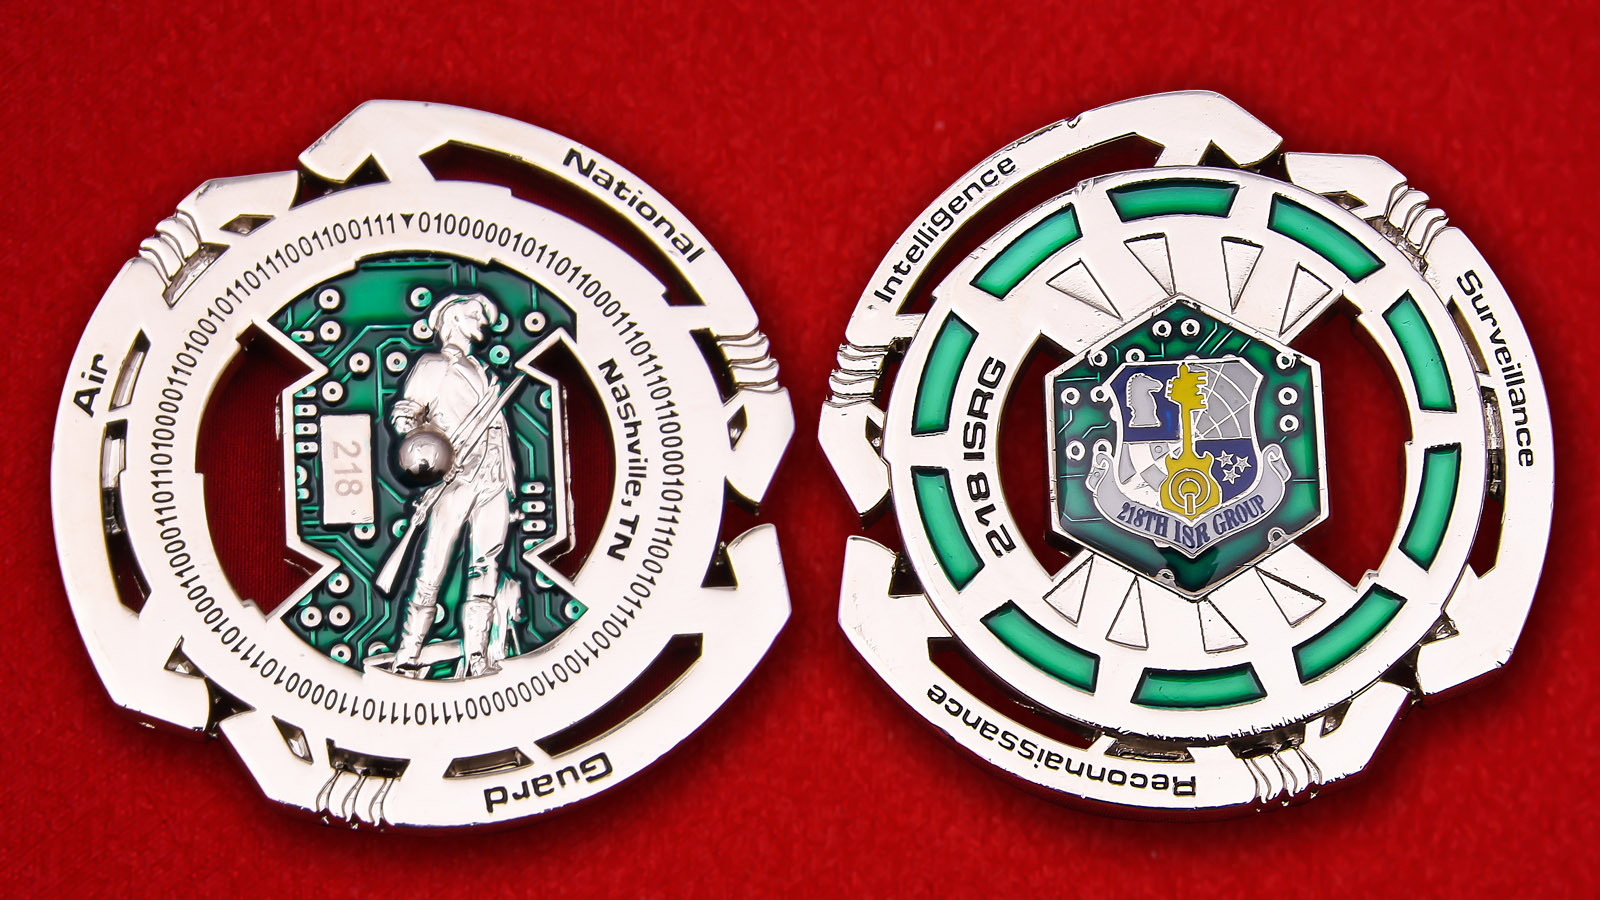 218th ISR Group Of National Guard Bureau Challenge Coin